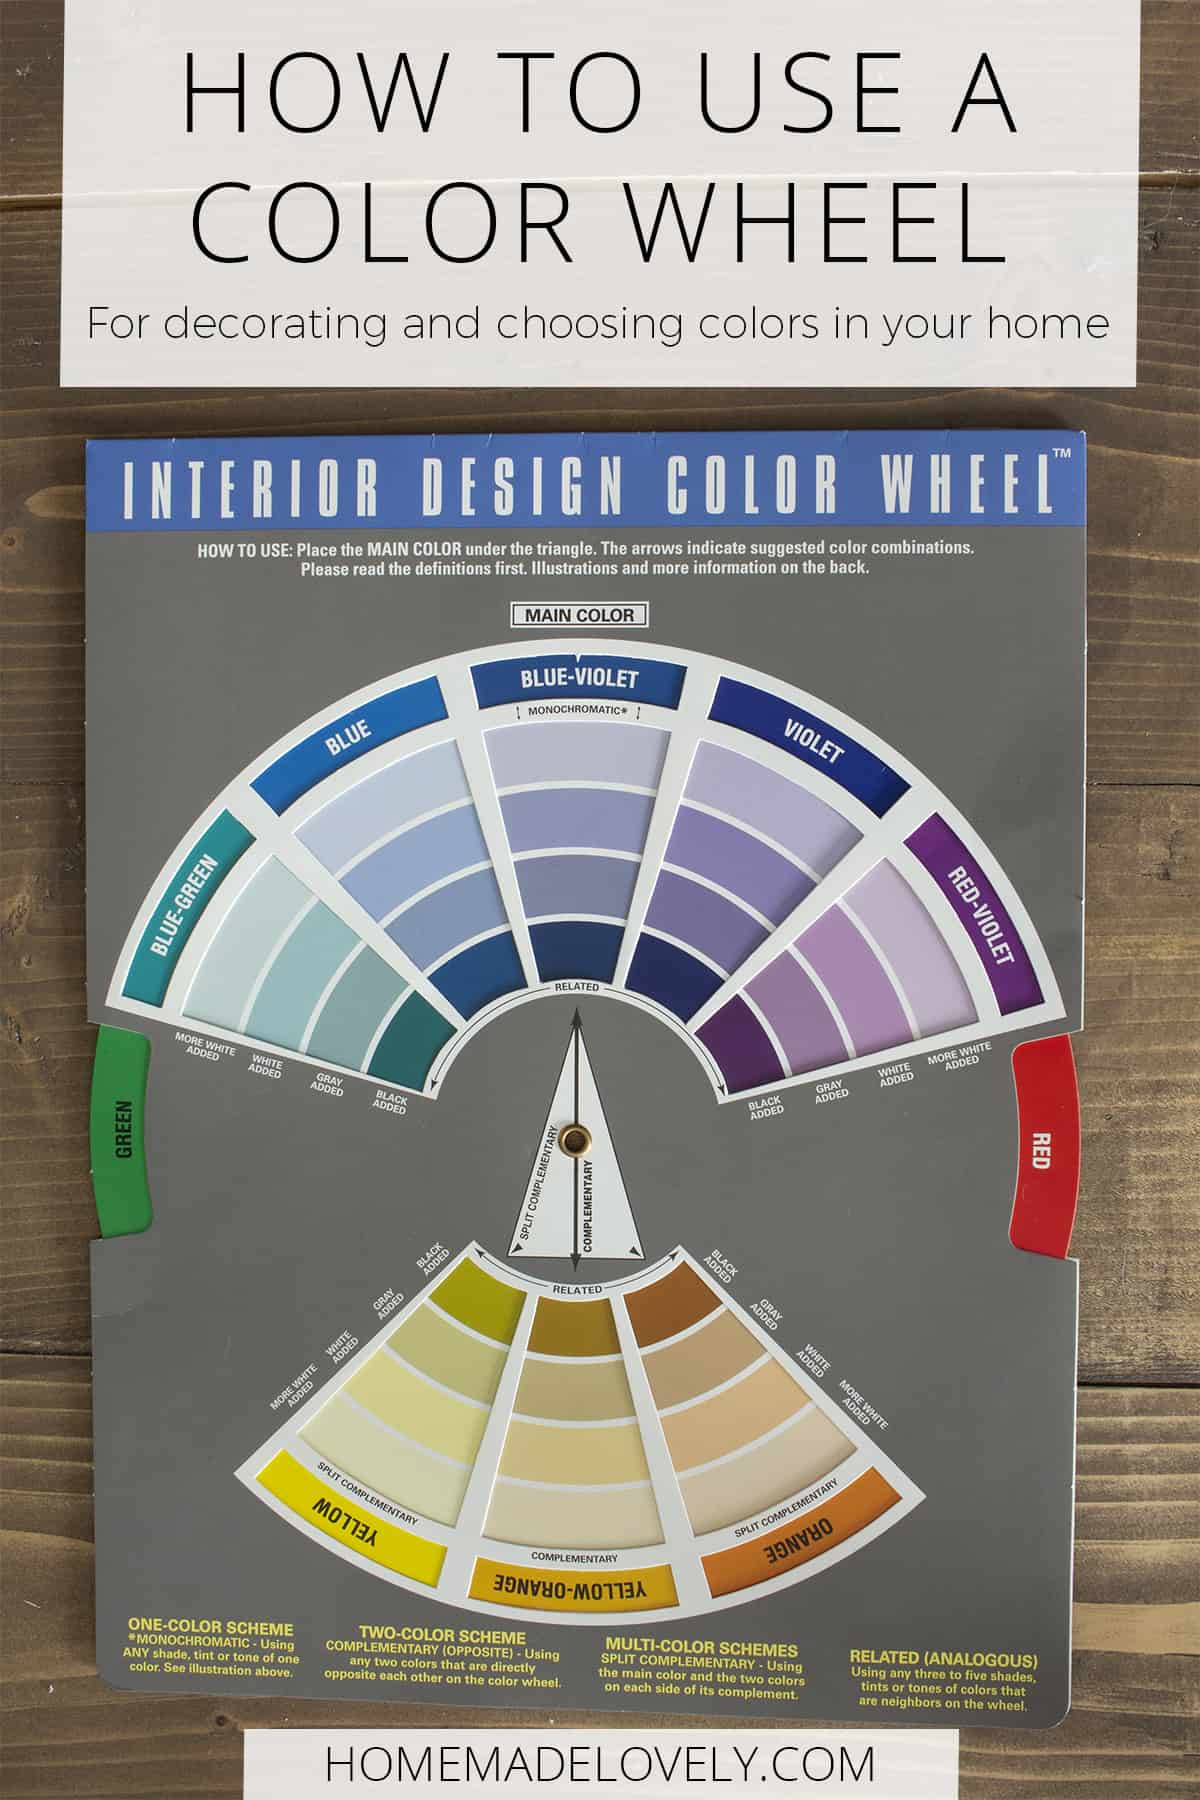 a decorator's color wheel on a wood table with text overlay that says how to use a color wheel for decorating and choosing colors for your home